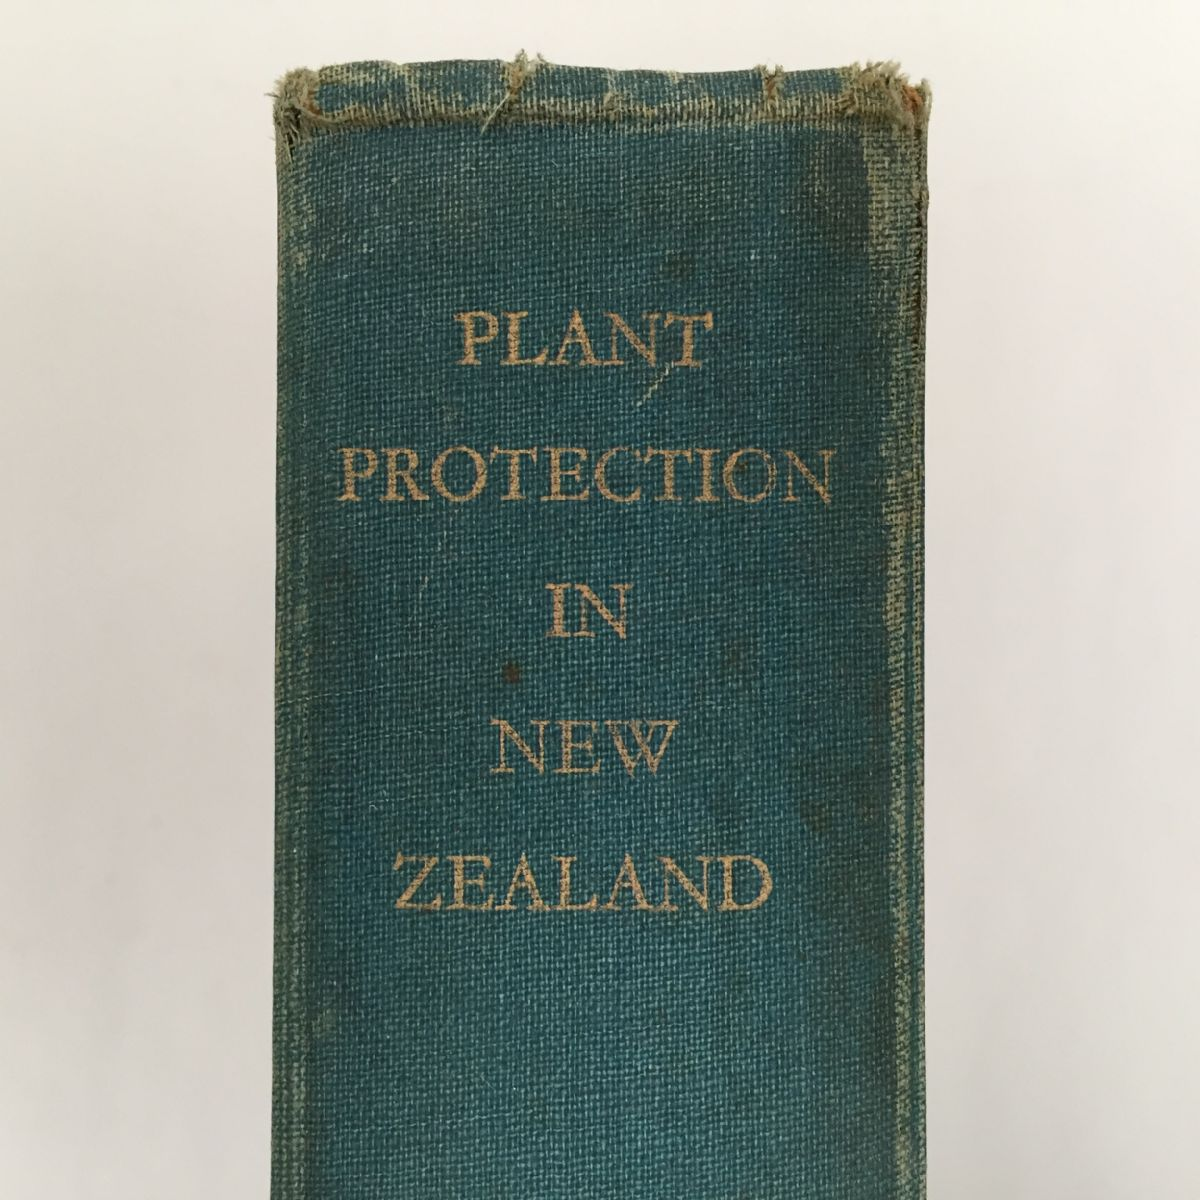 Plant Protection in New Zealand